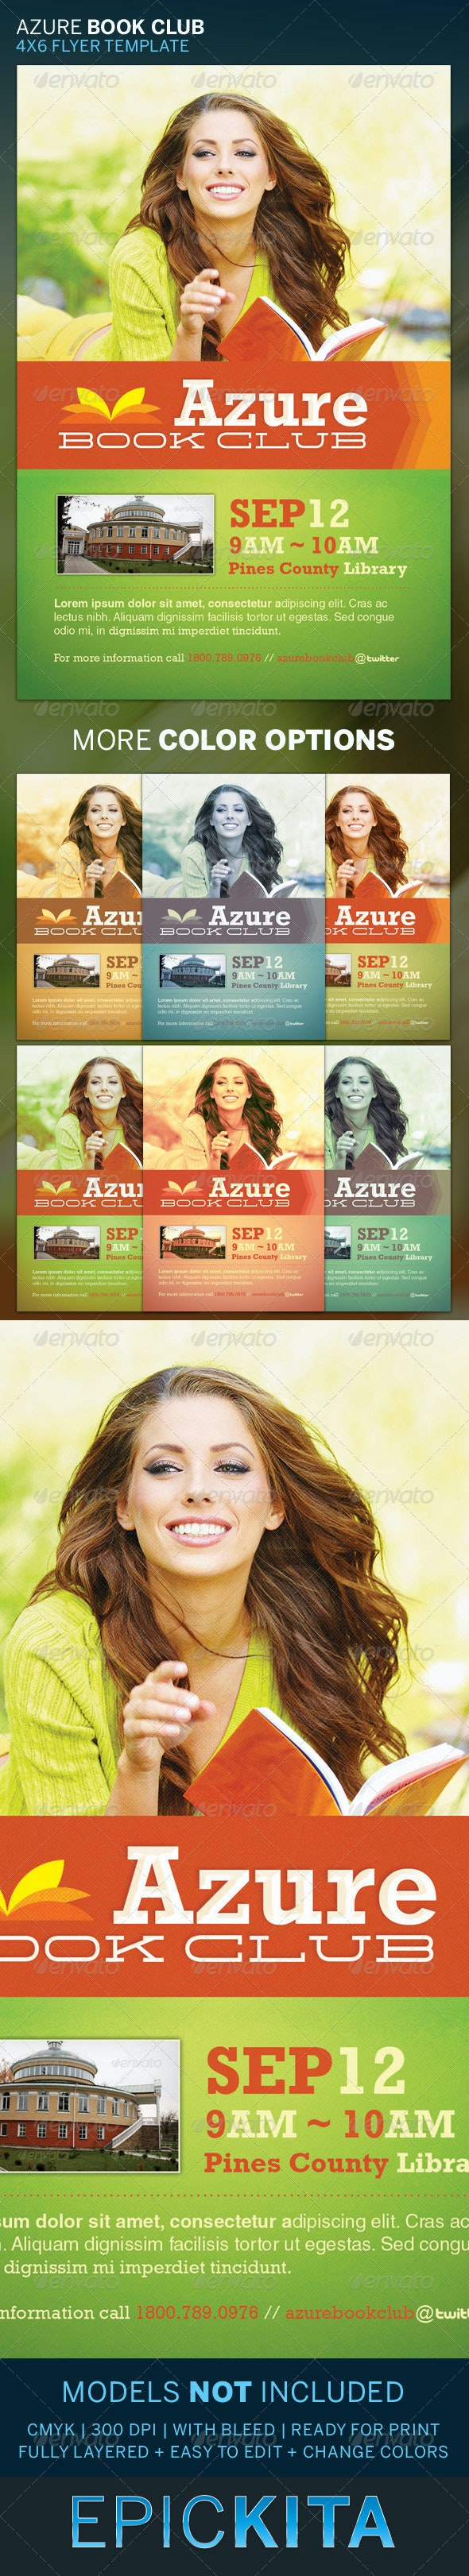 Azure Book Club Flyer Template - Events Flyers